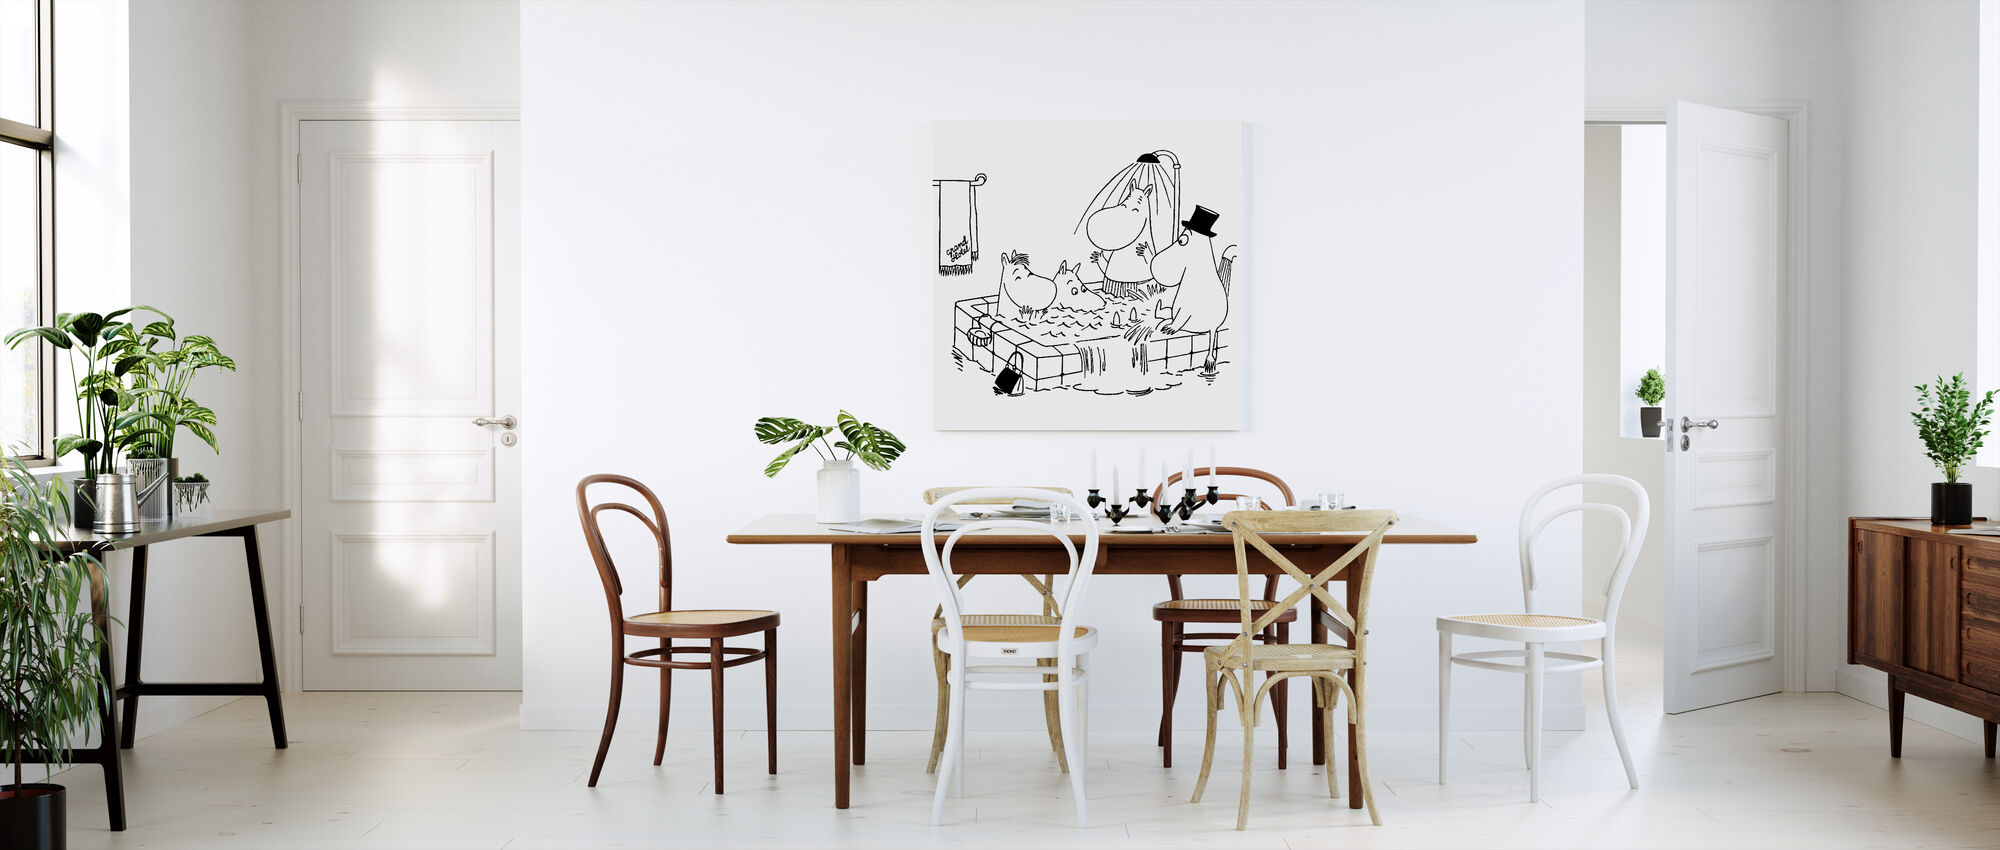 Moomin - Moomin family at Grand Hotel - Canvas print - Kitchen